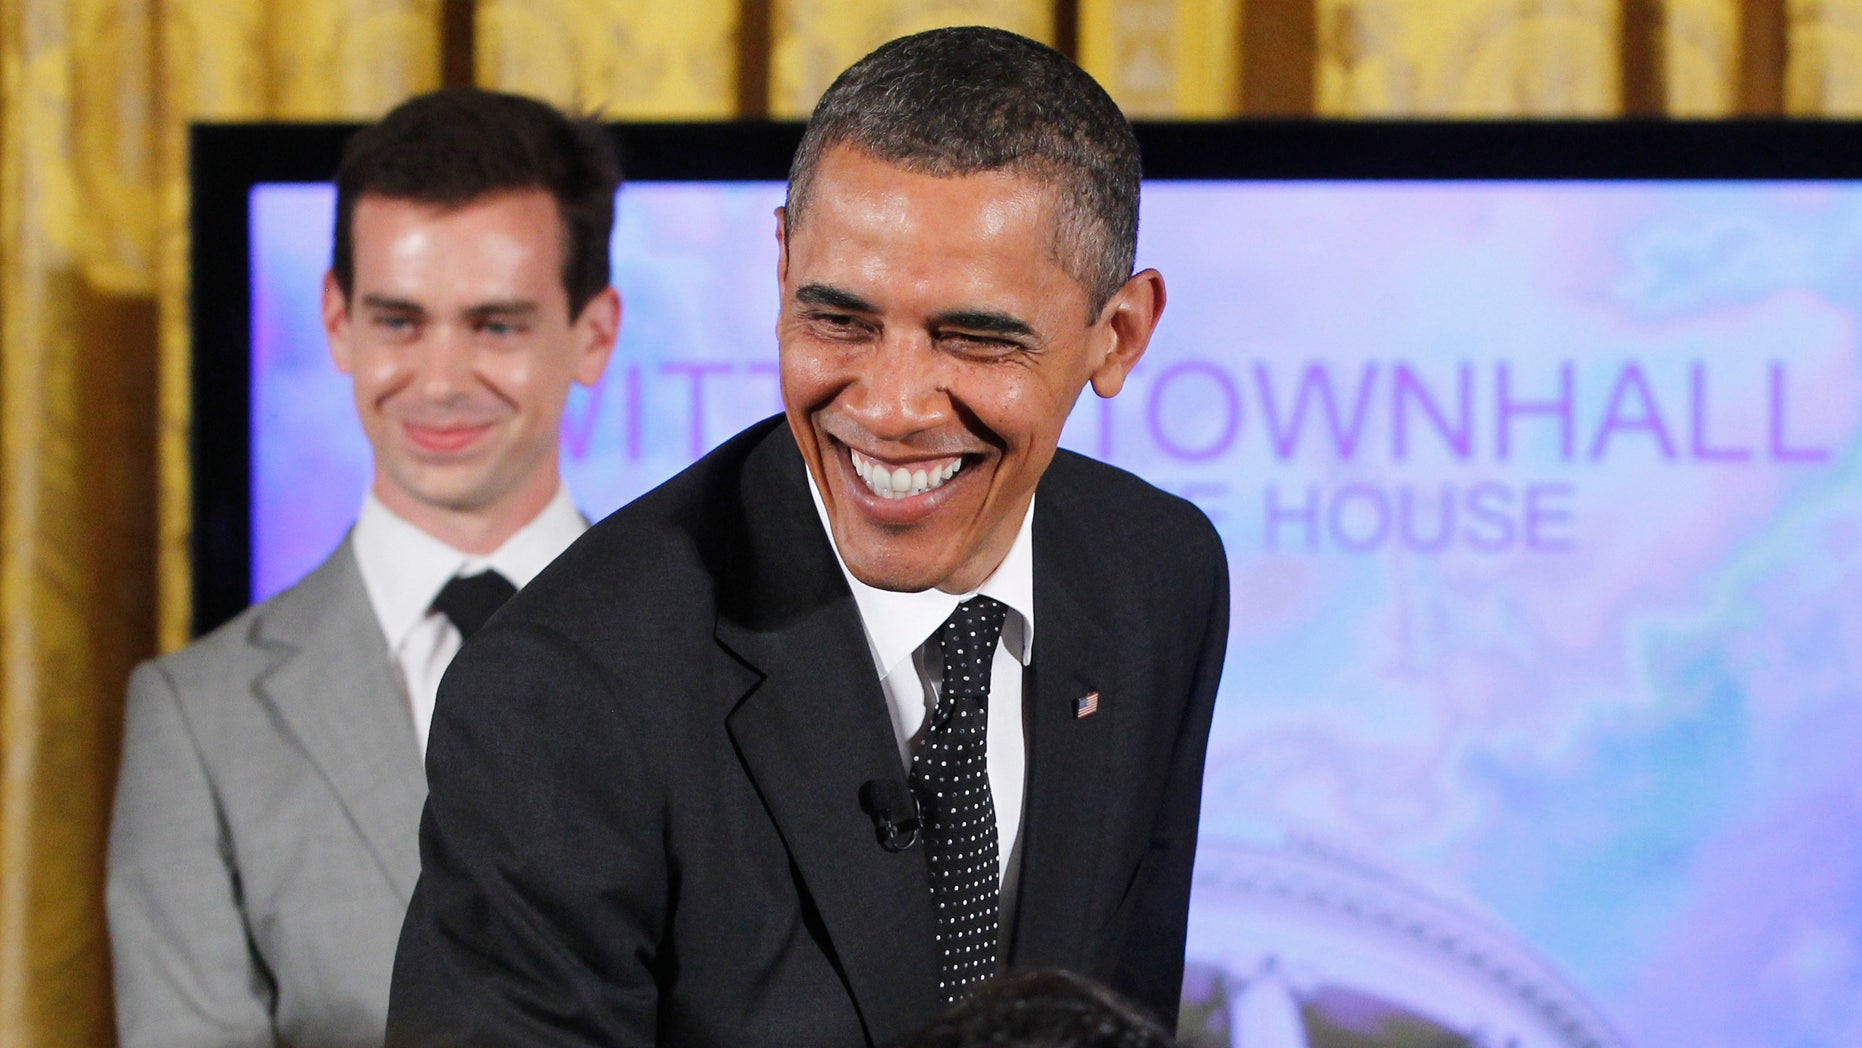 President Obama used a gun metaphor to describe debt talks with Republicans during a Twitter Town Hall in the East Room of the White House in Washington, Wednesday, July 6, 2011.